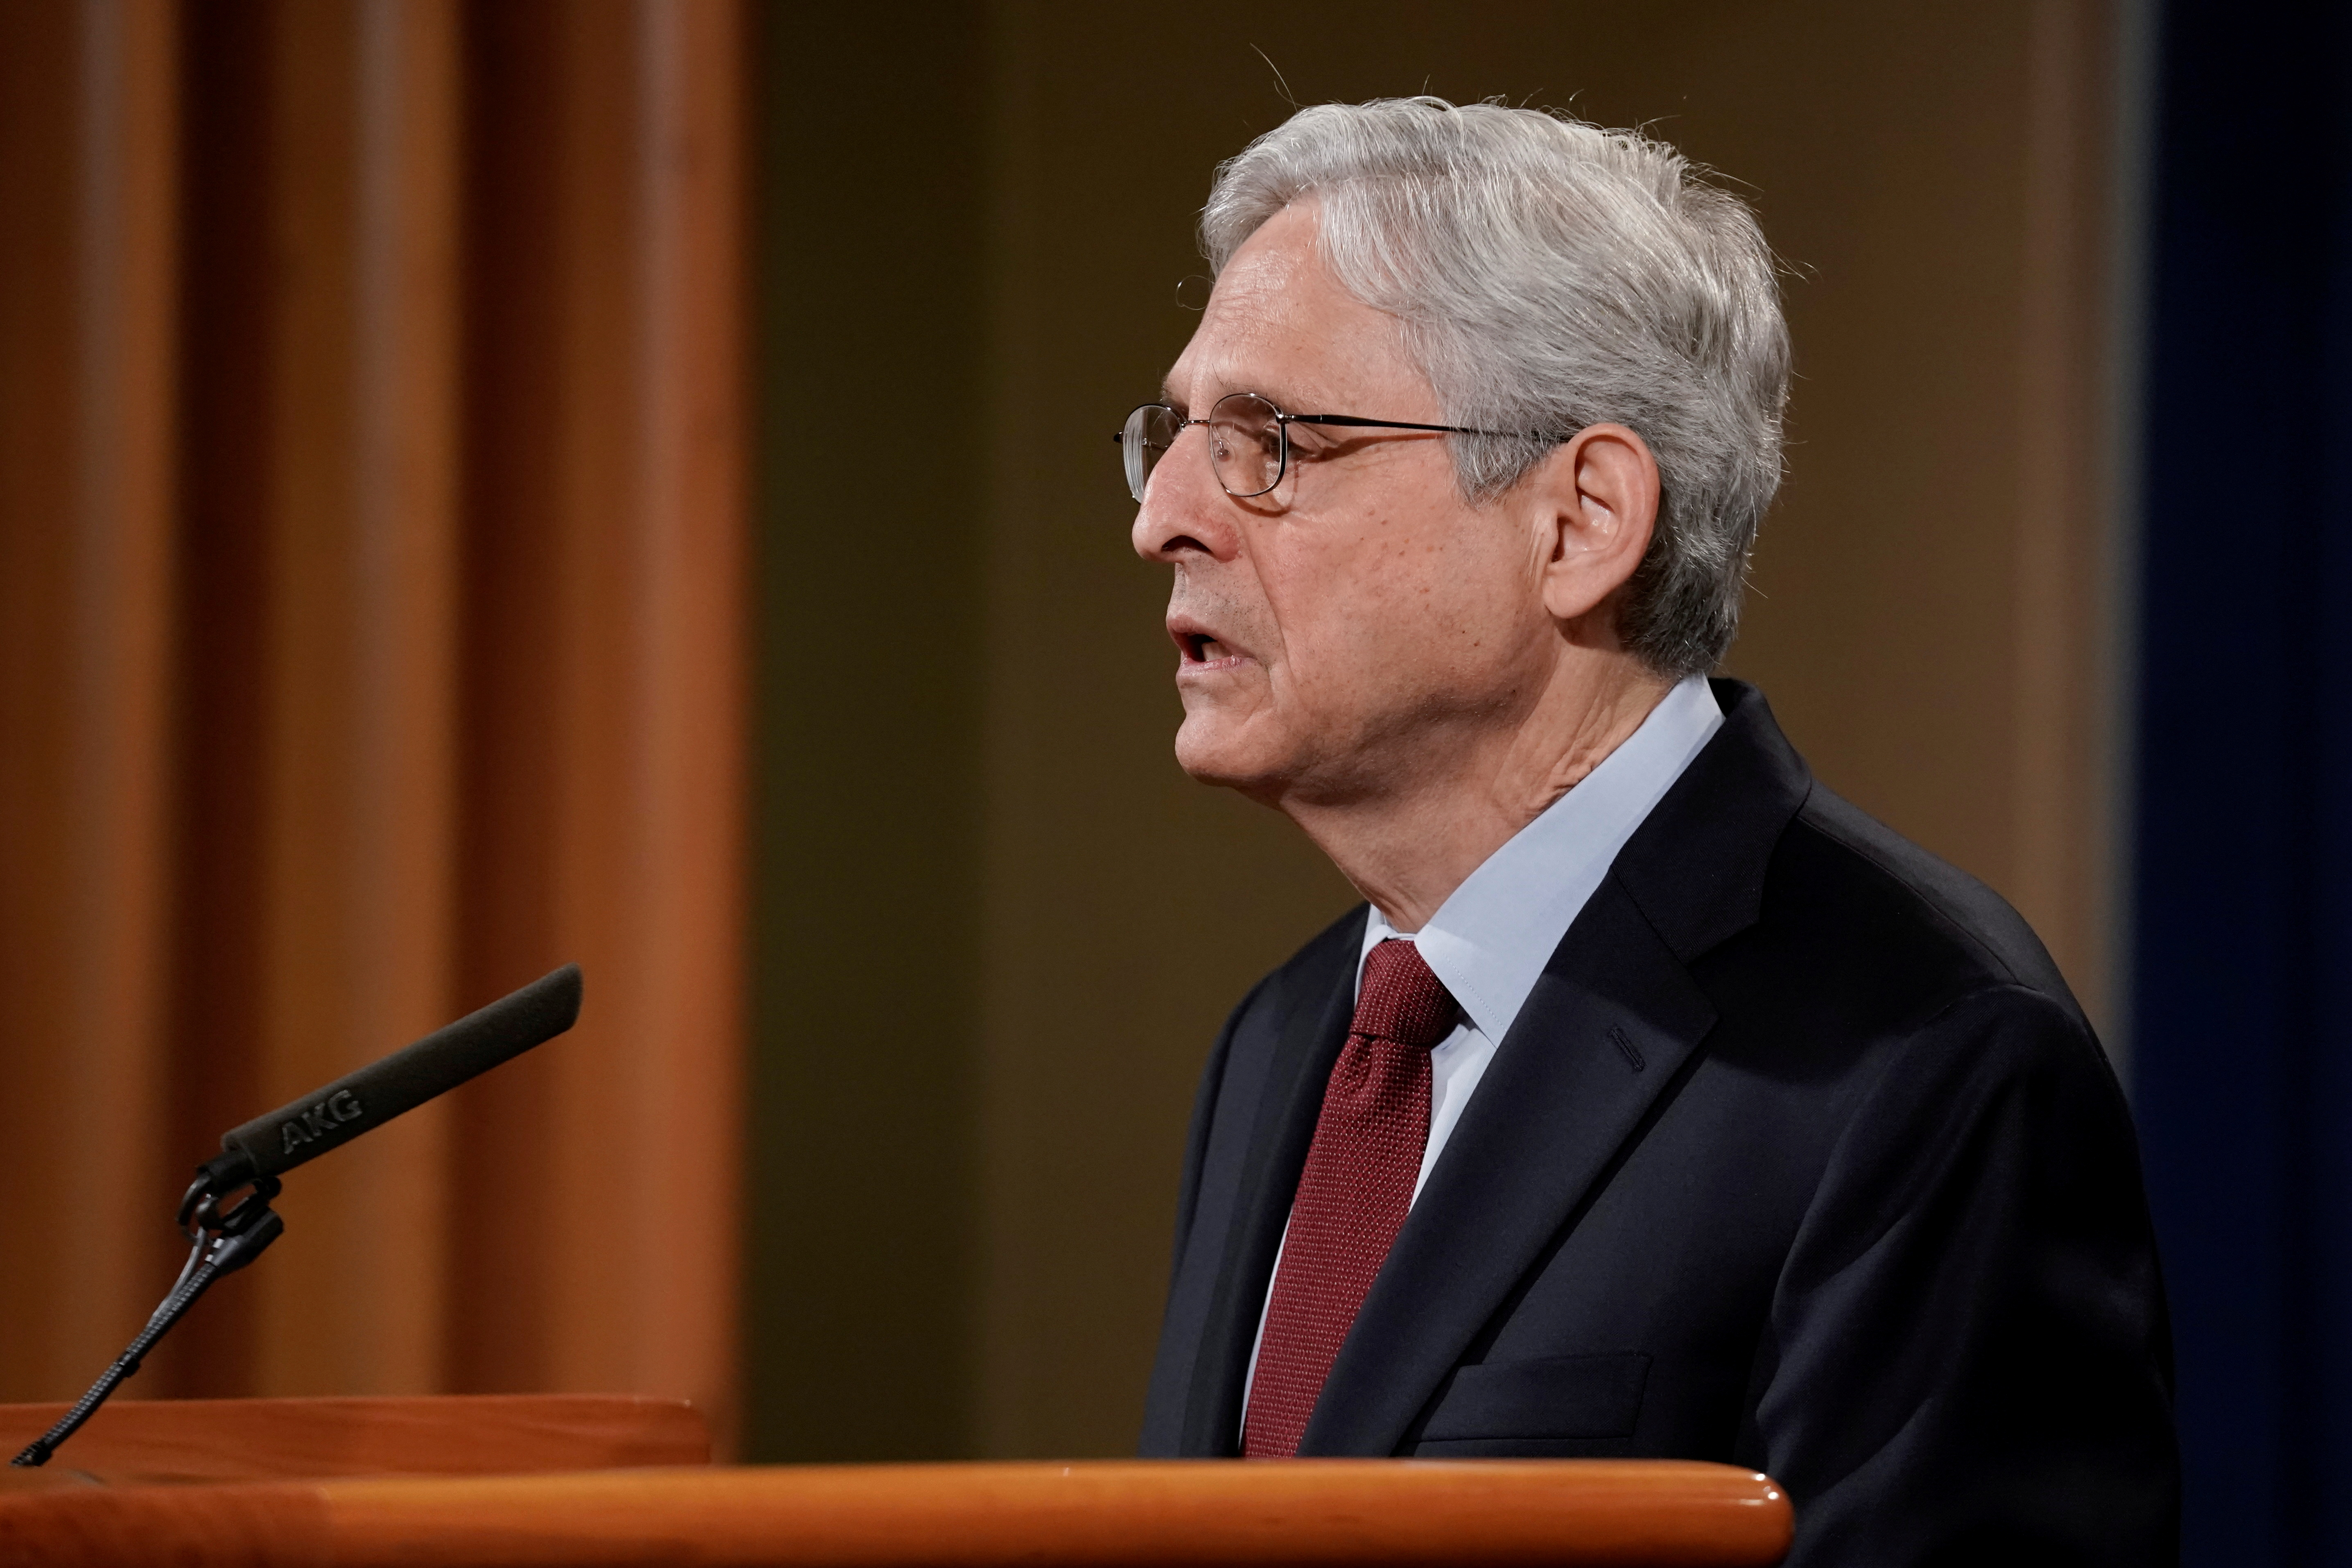 U.S. Attorney General Merrick Garland announces that the Justice Department will file a lawsuit challenging a Georgia election law that imposes new limits on voting, during a news conference at the Department of Justice in Washington, D.C., U.S., June 25, 2021. REUTERS/Ken Cedeno/File Photo